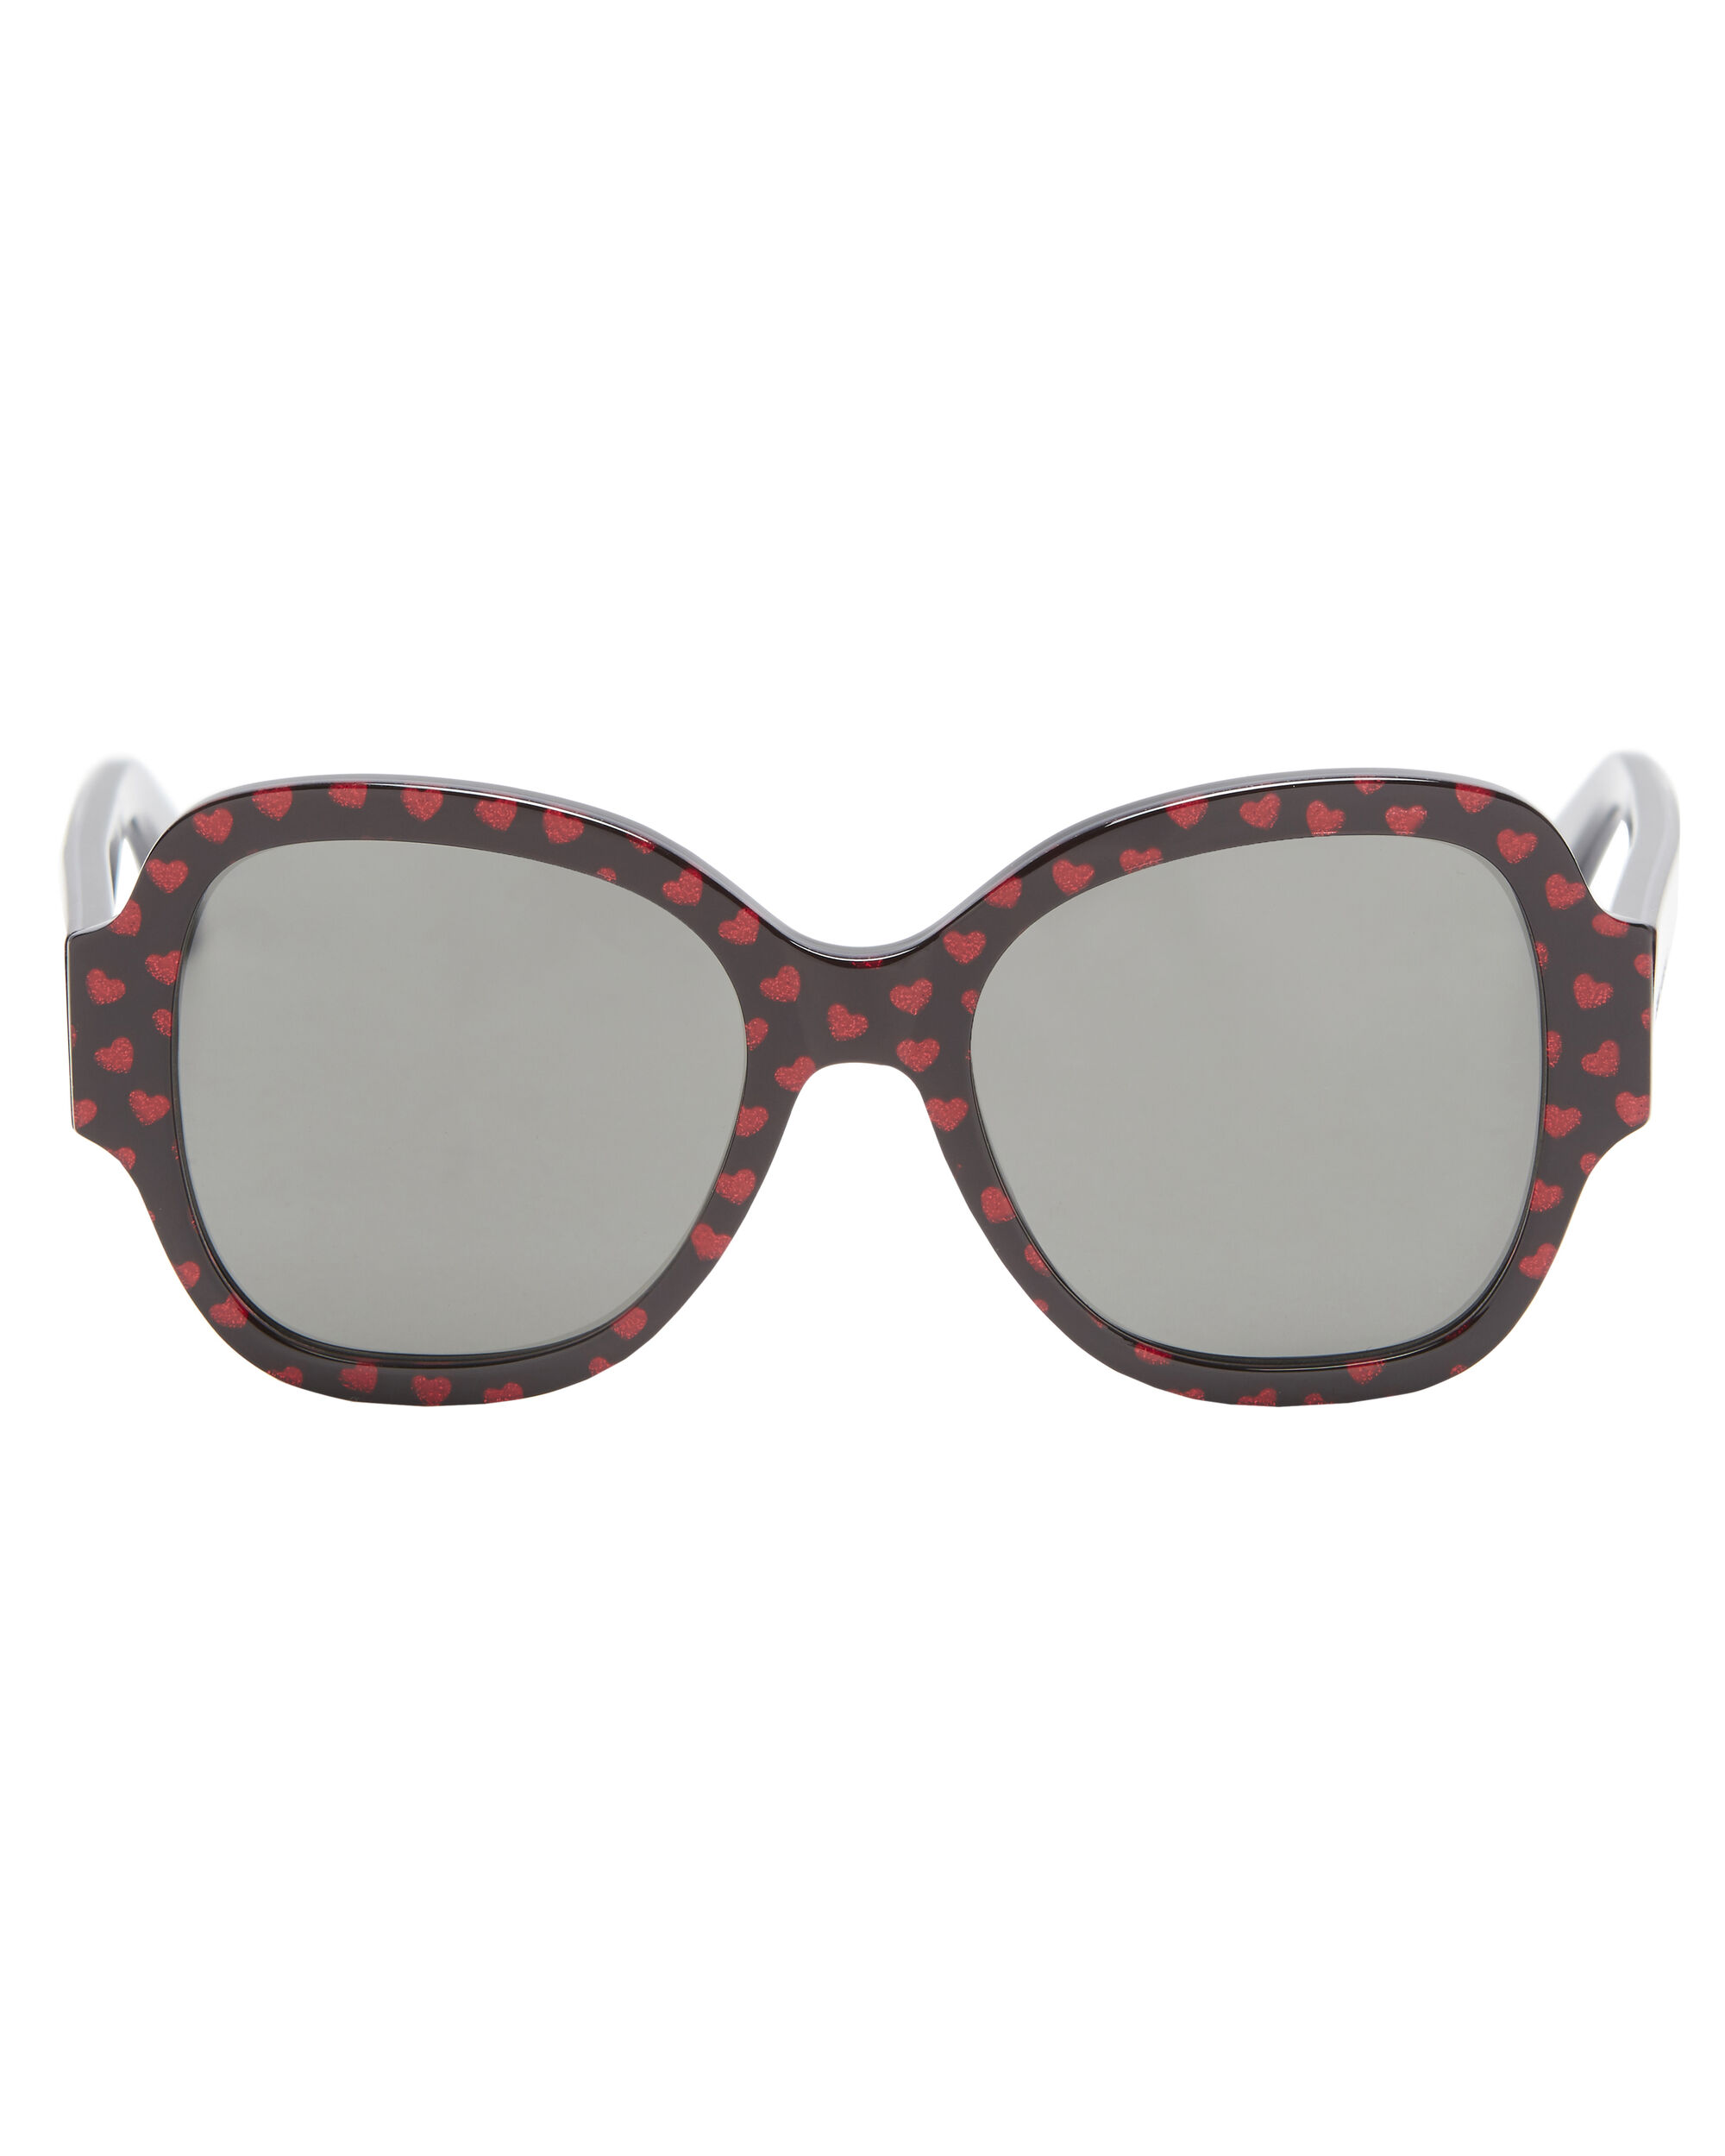 Heart Pattern Sunglasses, RED, hi-res